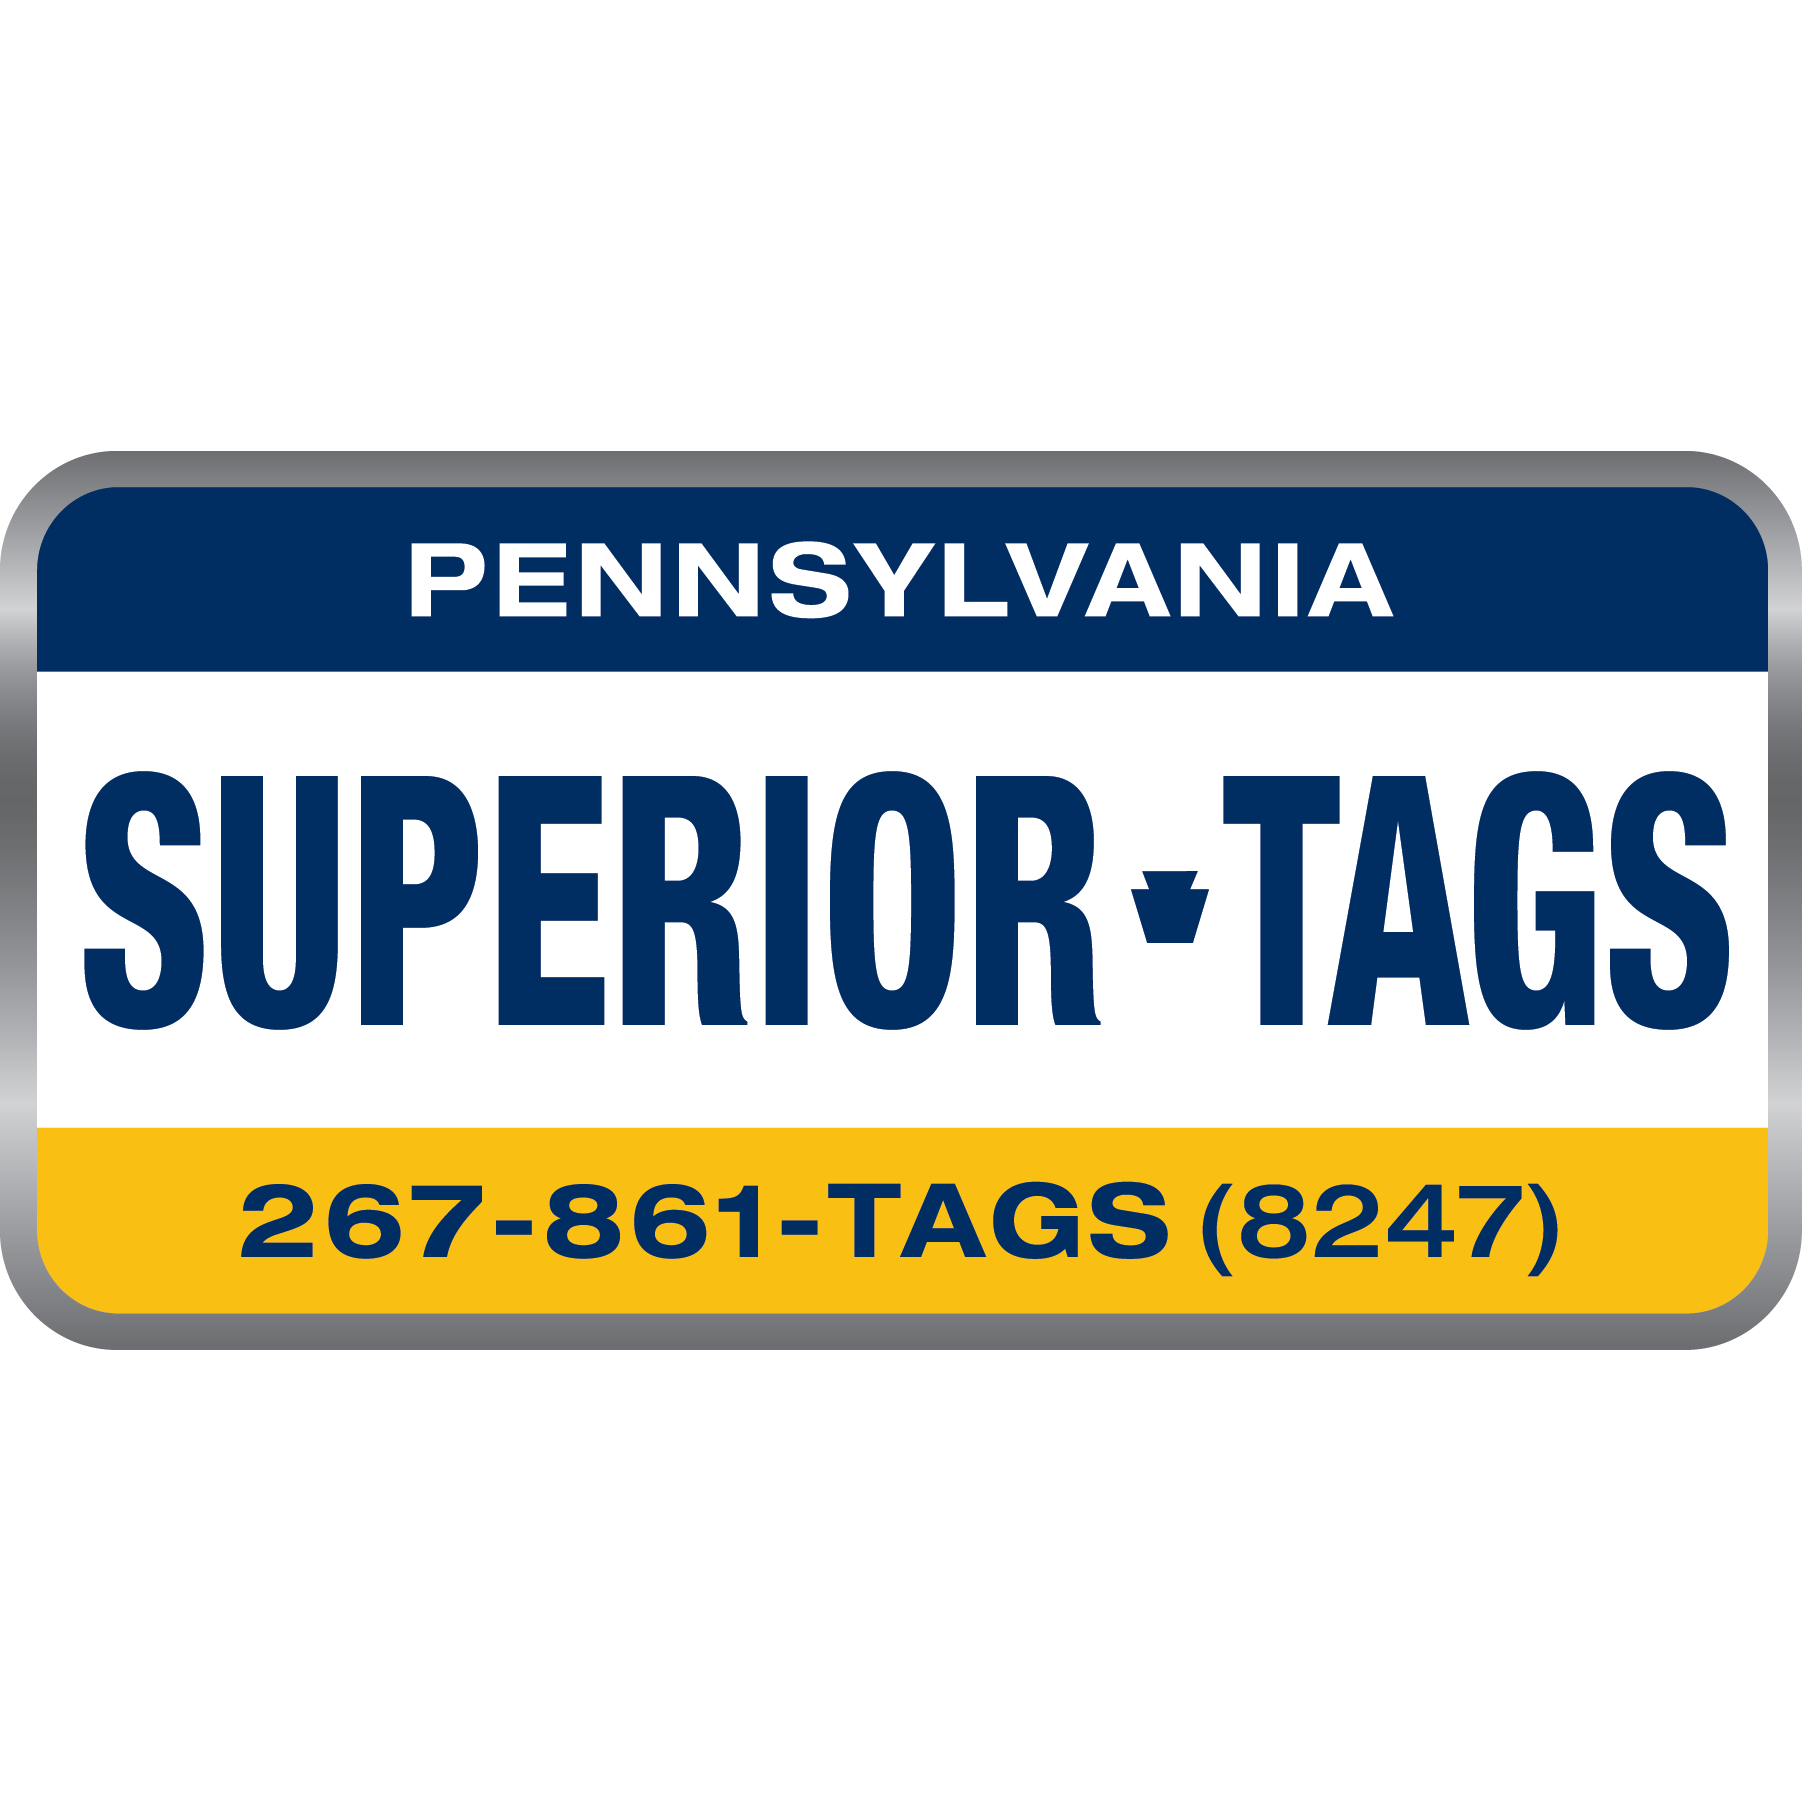 Superior Tags